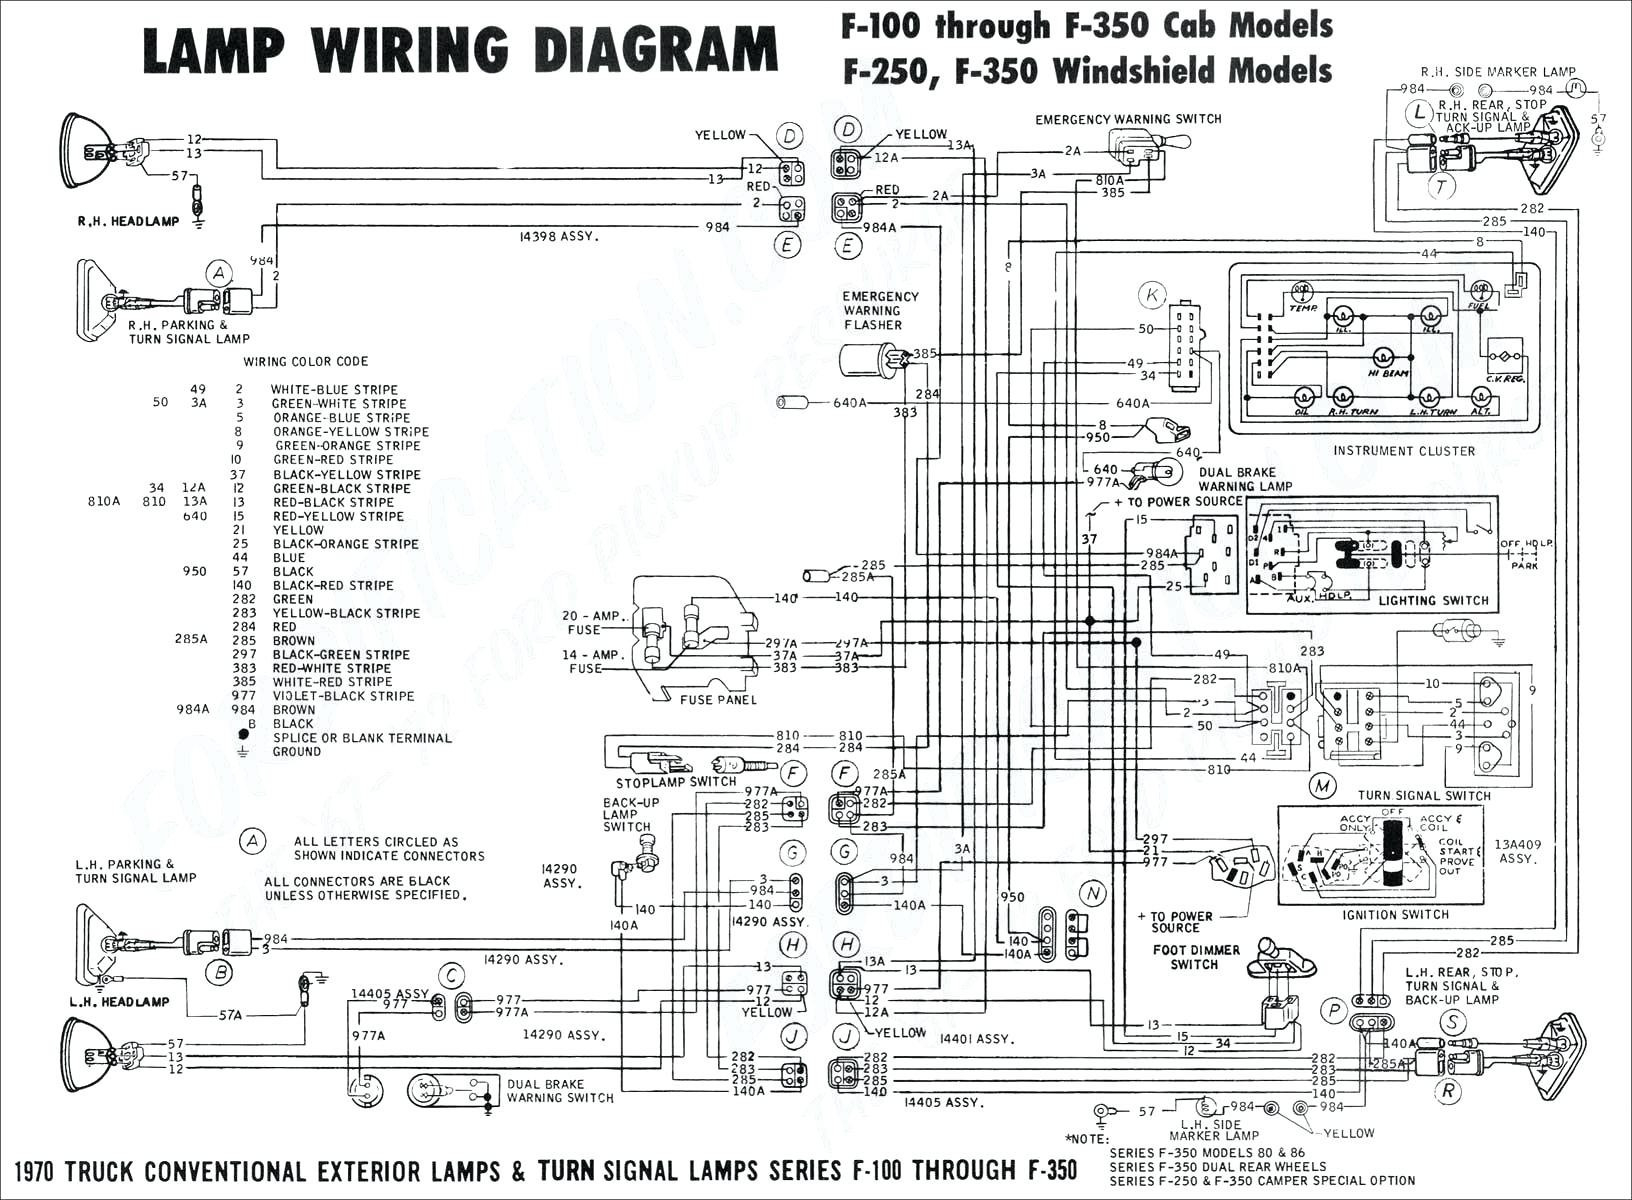 1990 dodge w250 parts diagram wiring schematic schematics wiring rh seniorlivinguniversity co 1989 dodge cummins wiring diagram 1989 dodge cummins wiring diagram